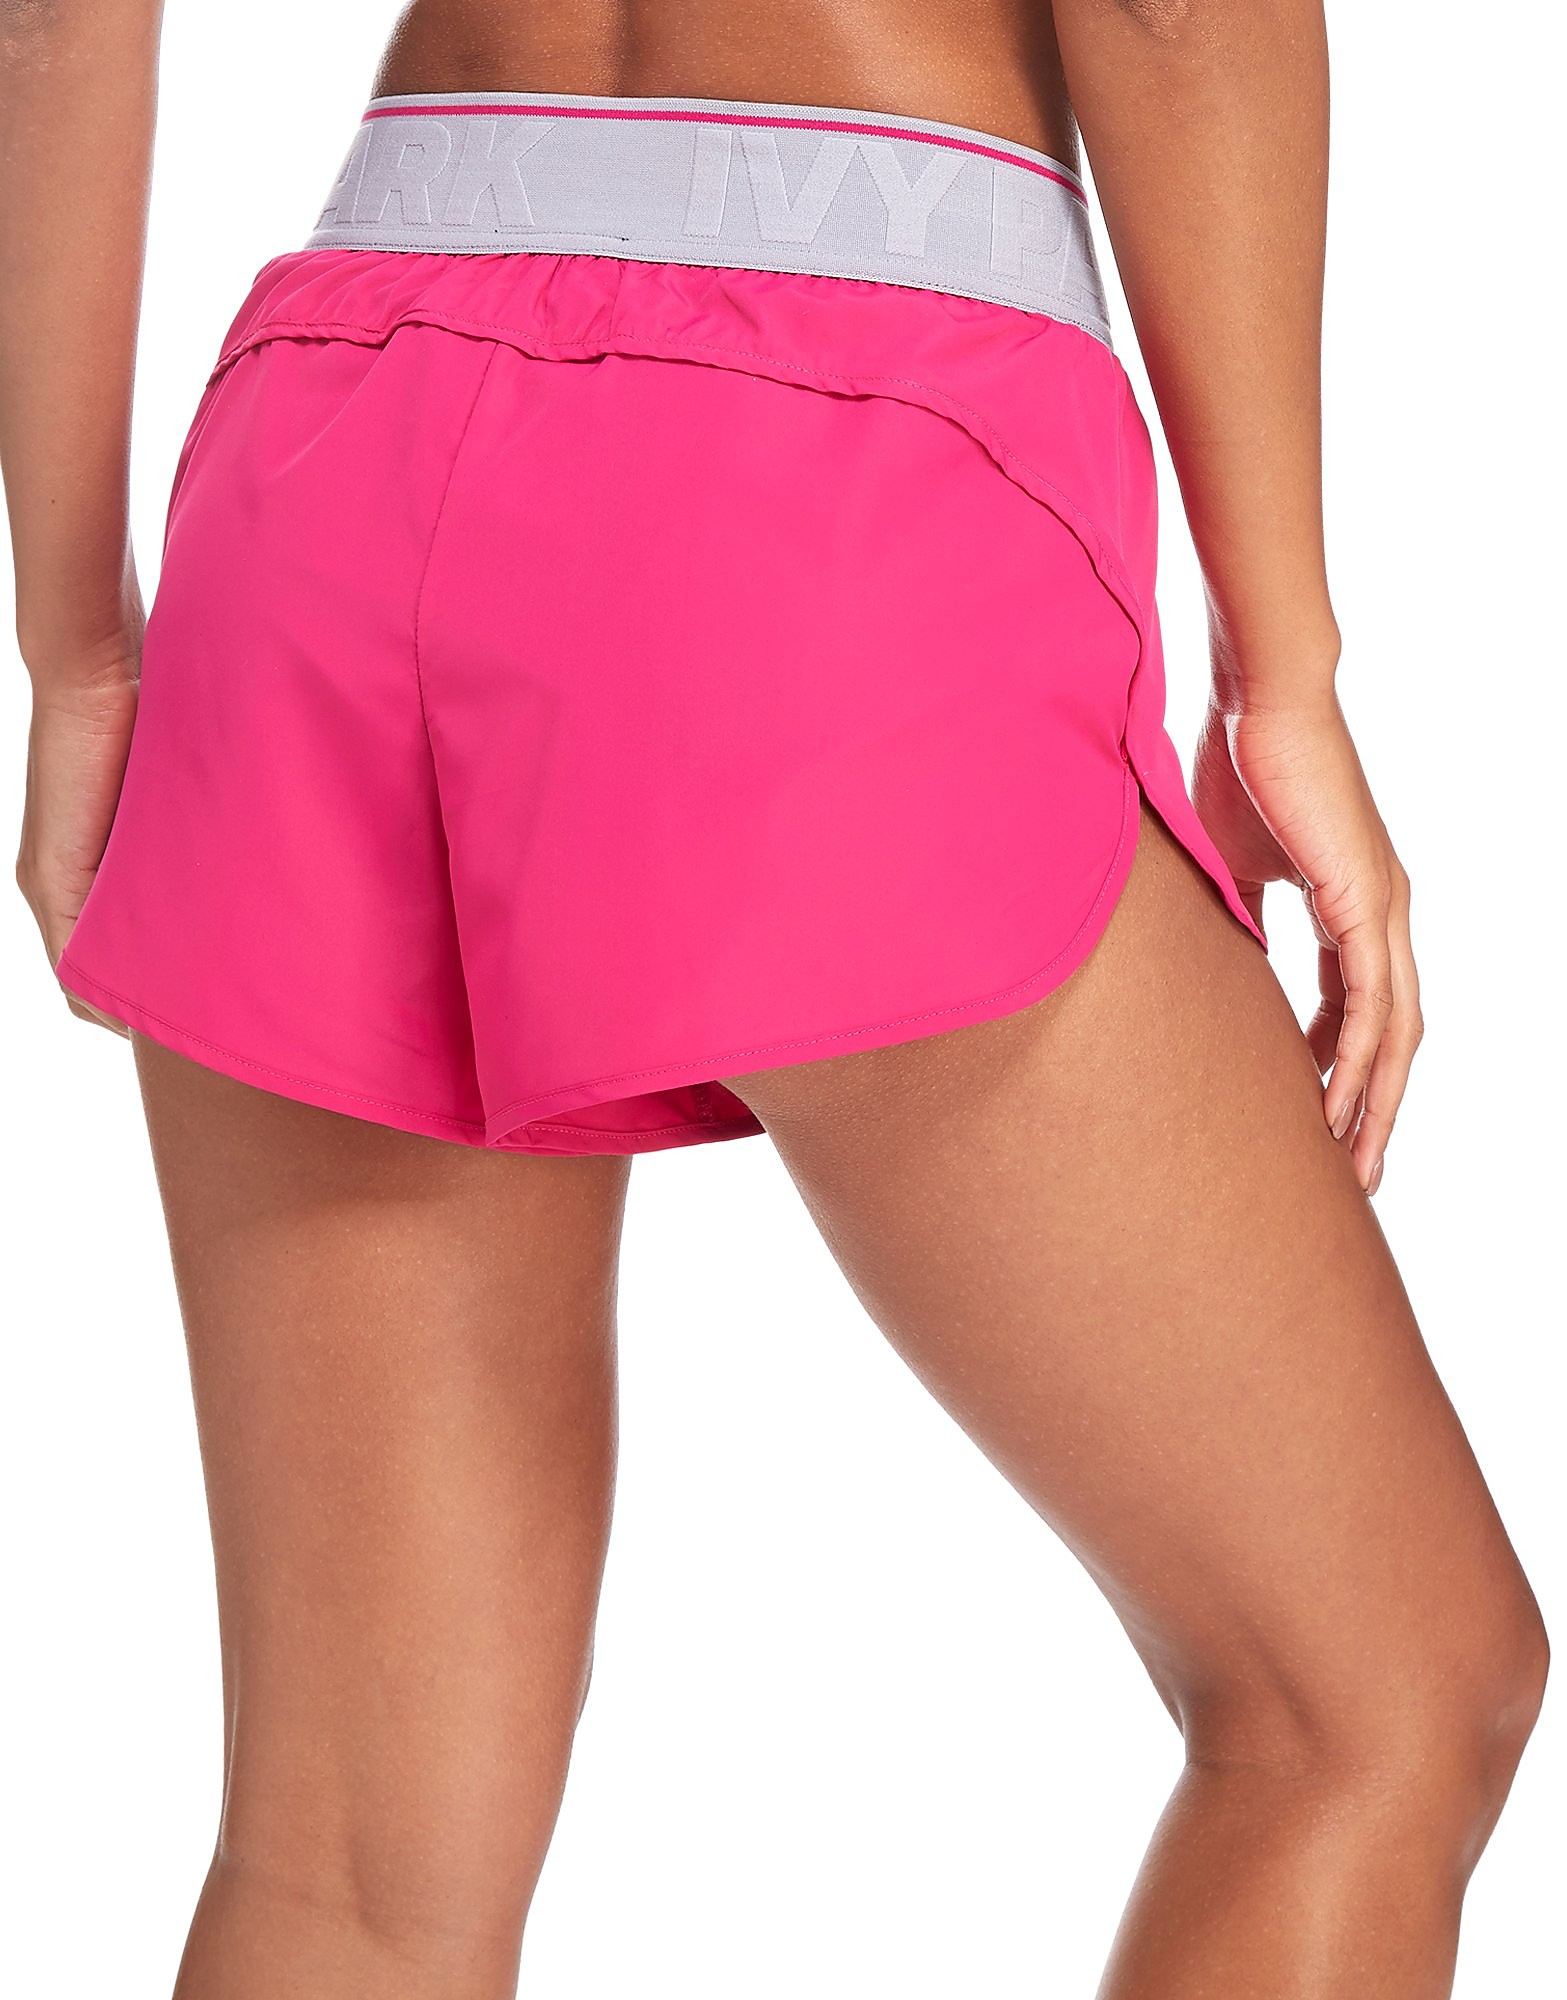 IVY PARK Tape Run Shorts